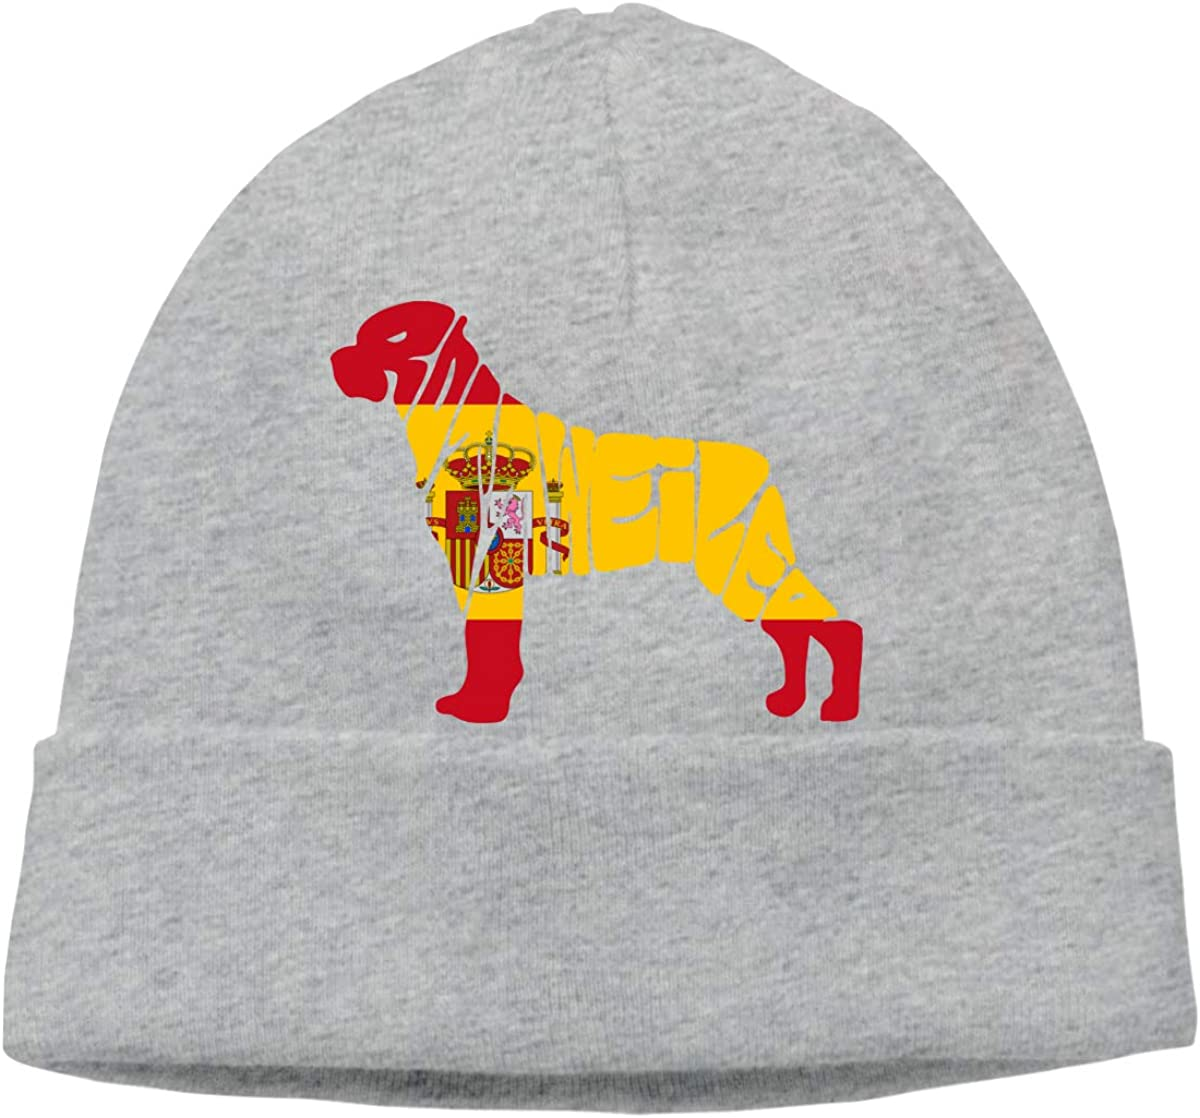 BF5Y3z/&MA Spain Flag Rottweiler Dog Beanie Hat for Men Women,Daily Knitting Hat Ski Cap